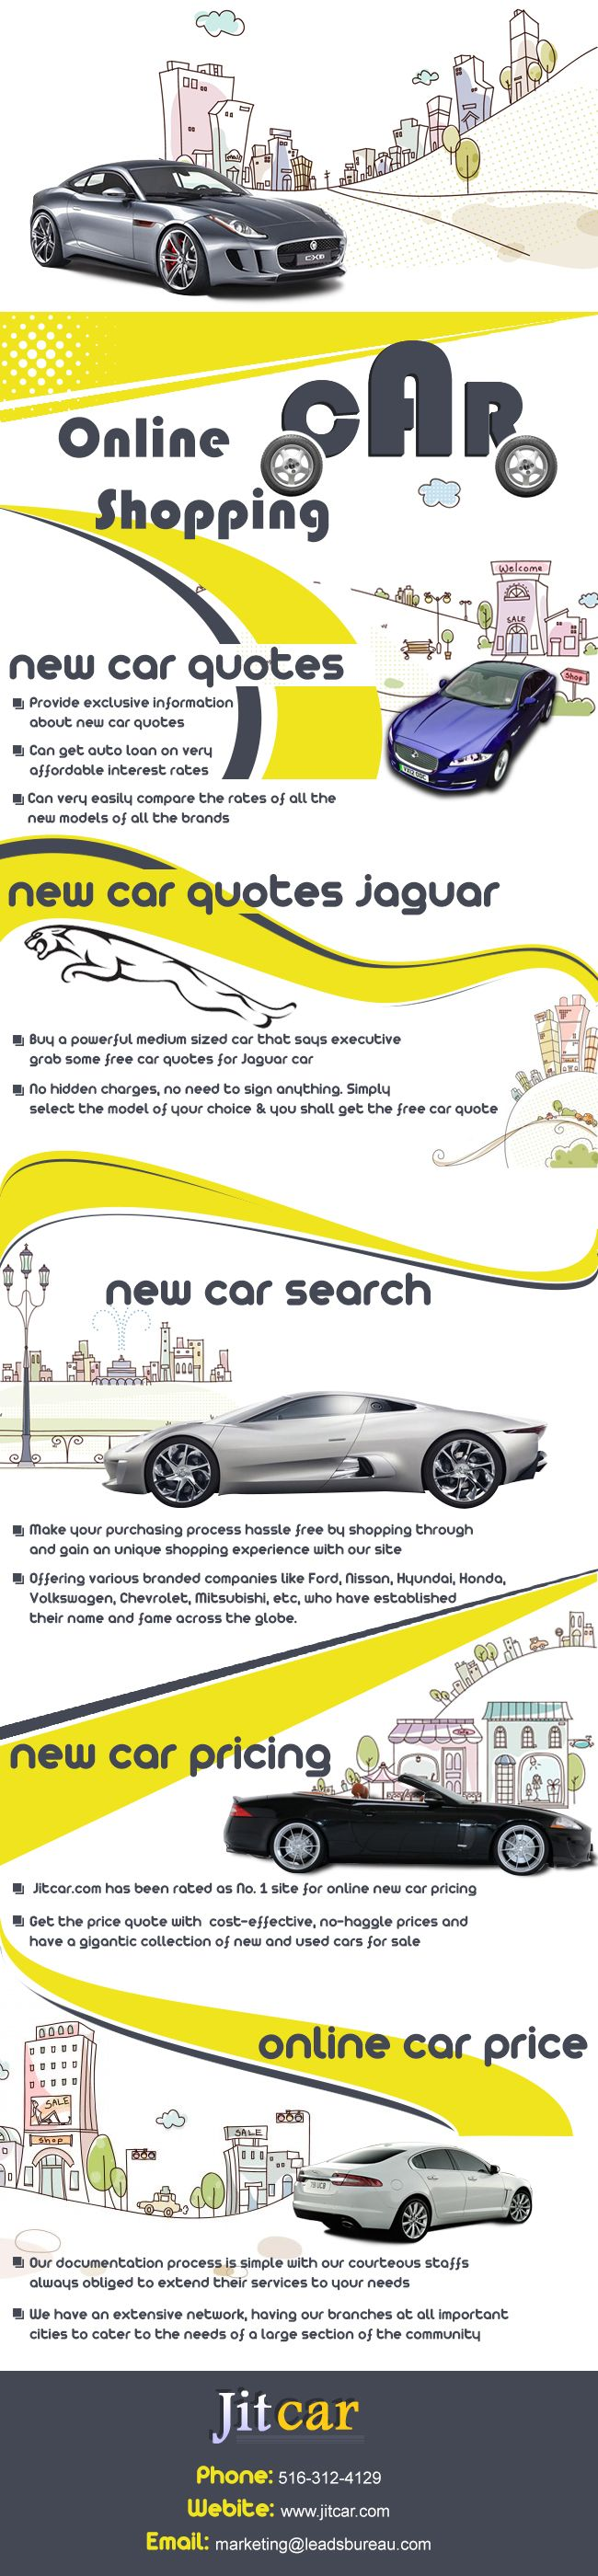 New Car Quotes 20 Best Online New Car Quotes Infographics Images On Pinterest